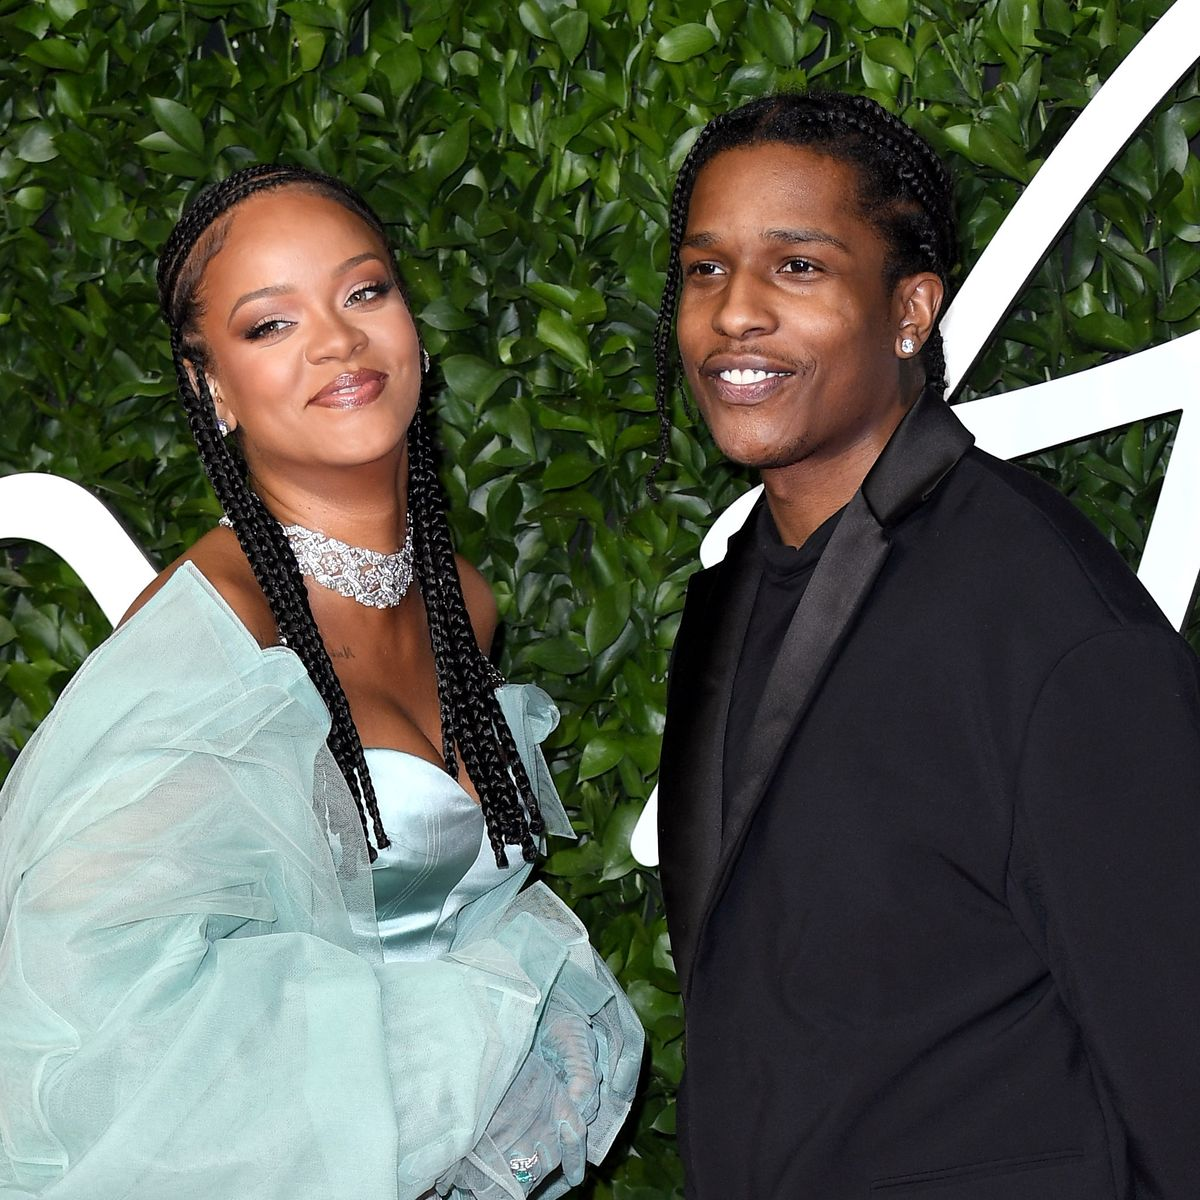 who is rihanna dating right now